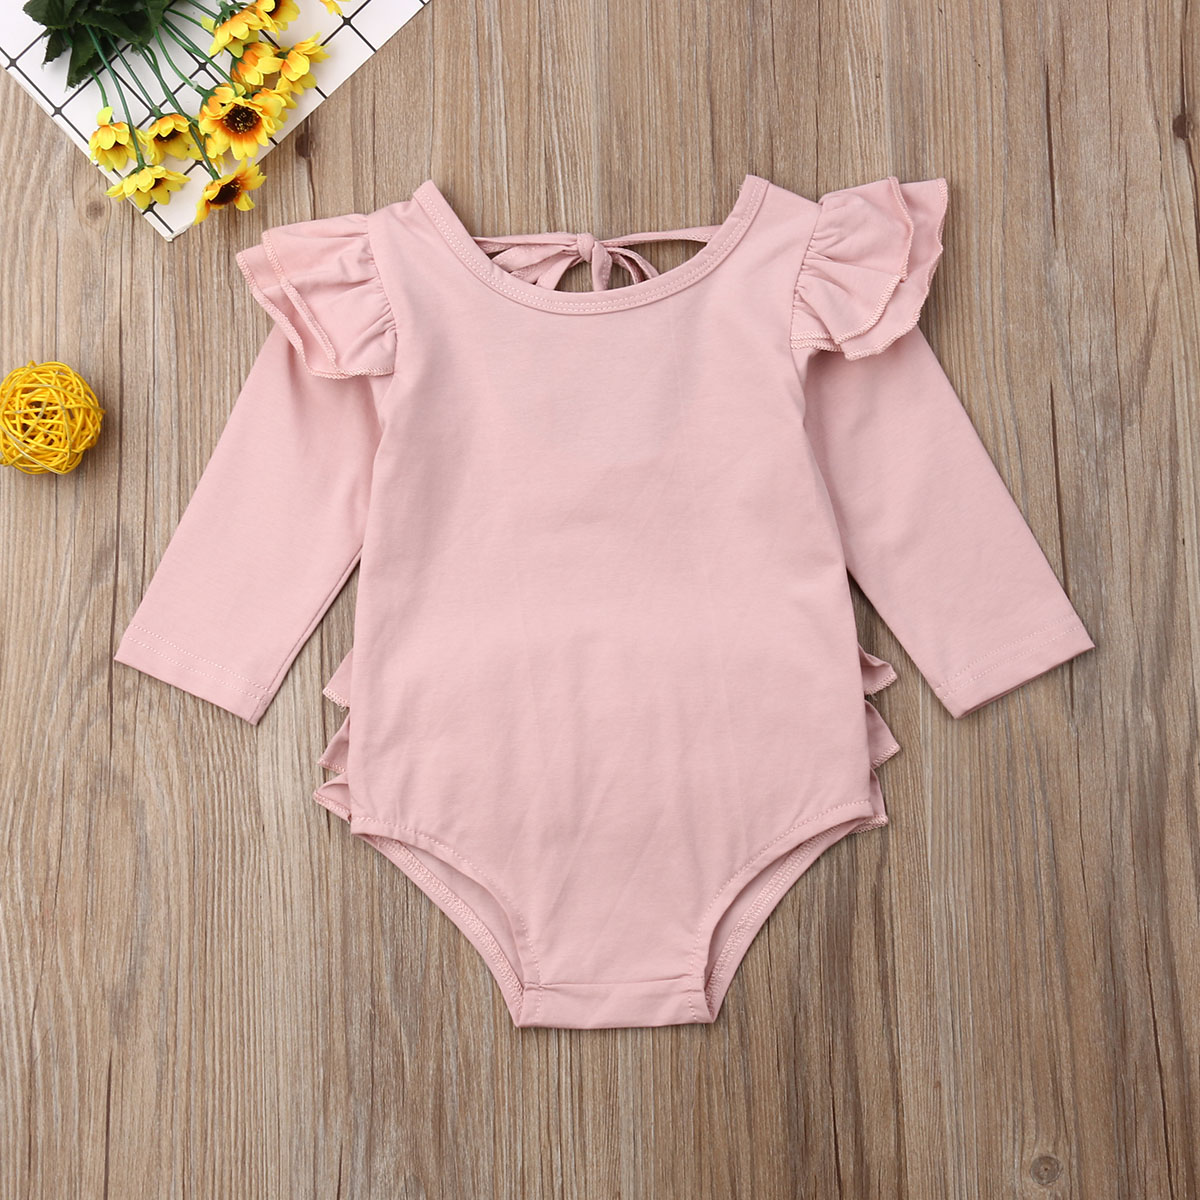 Headband Fall Clothes Sets 0-2T Halloween Outfits Toddler Baby Girl Romper Pumpkin Floral Ruffle Bowknot Bodysuit Jumpsuit